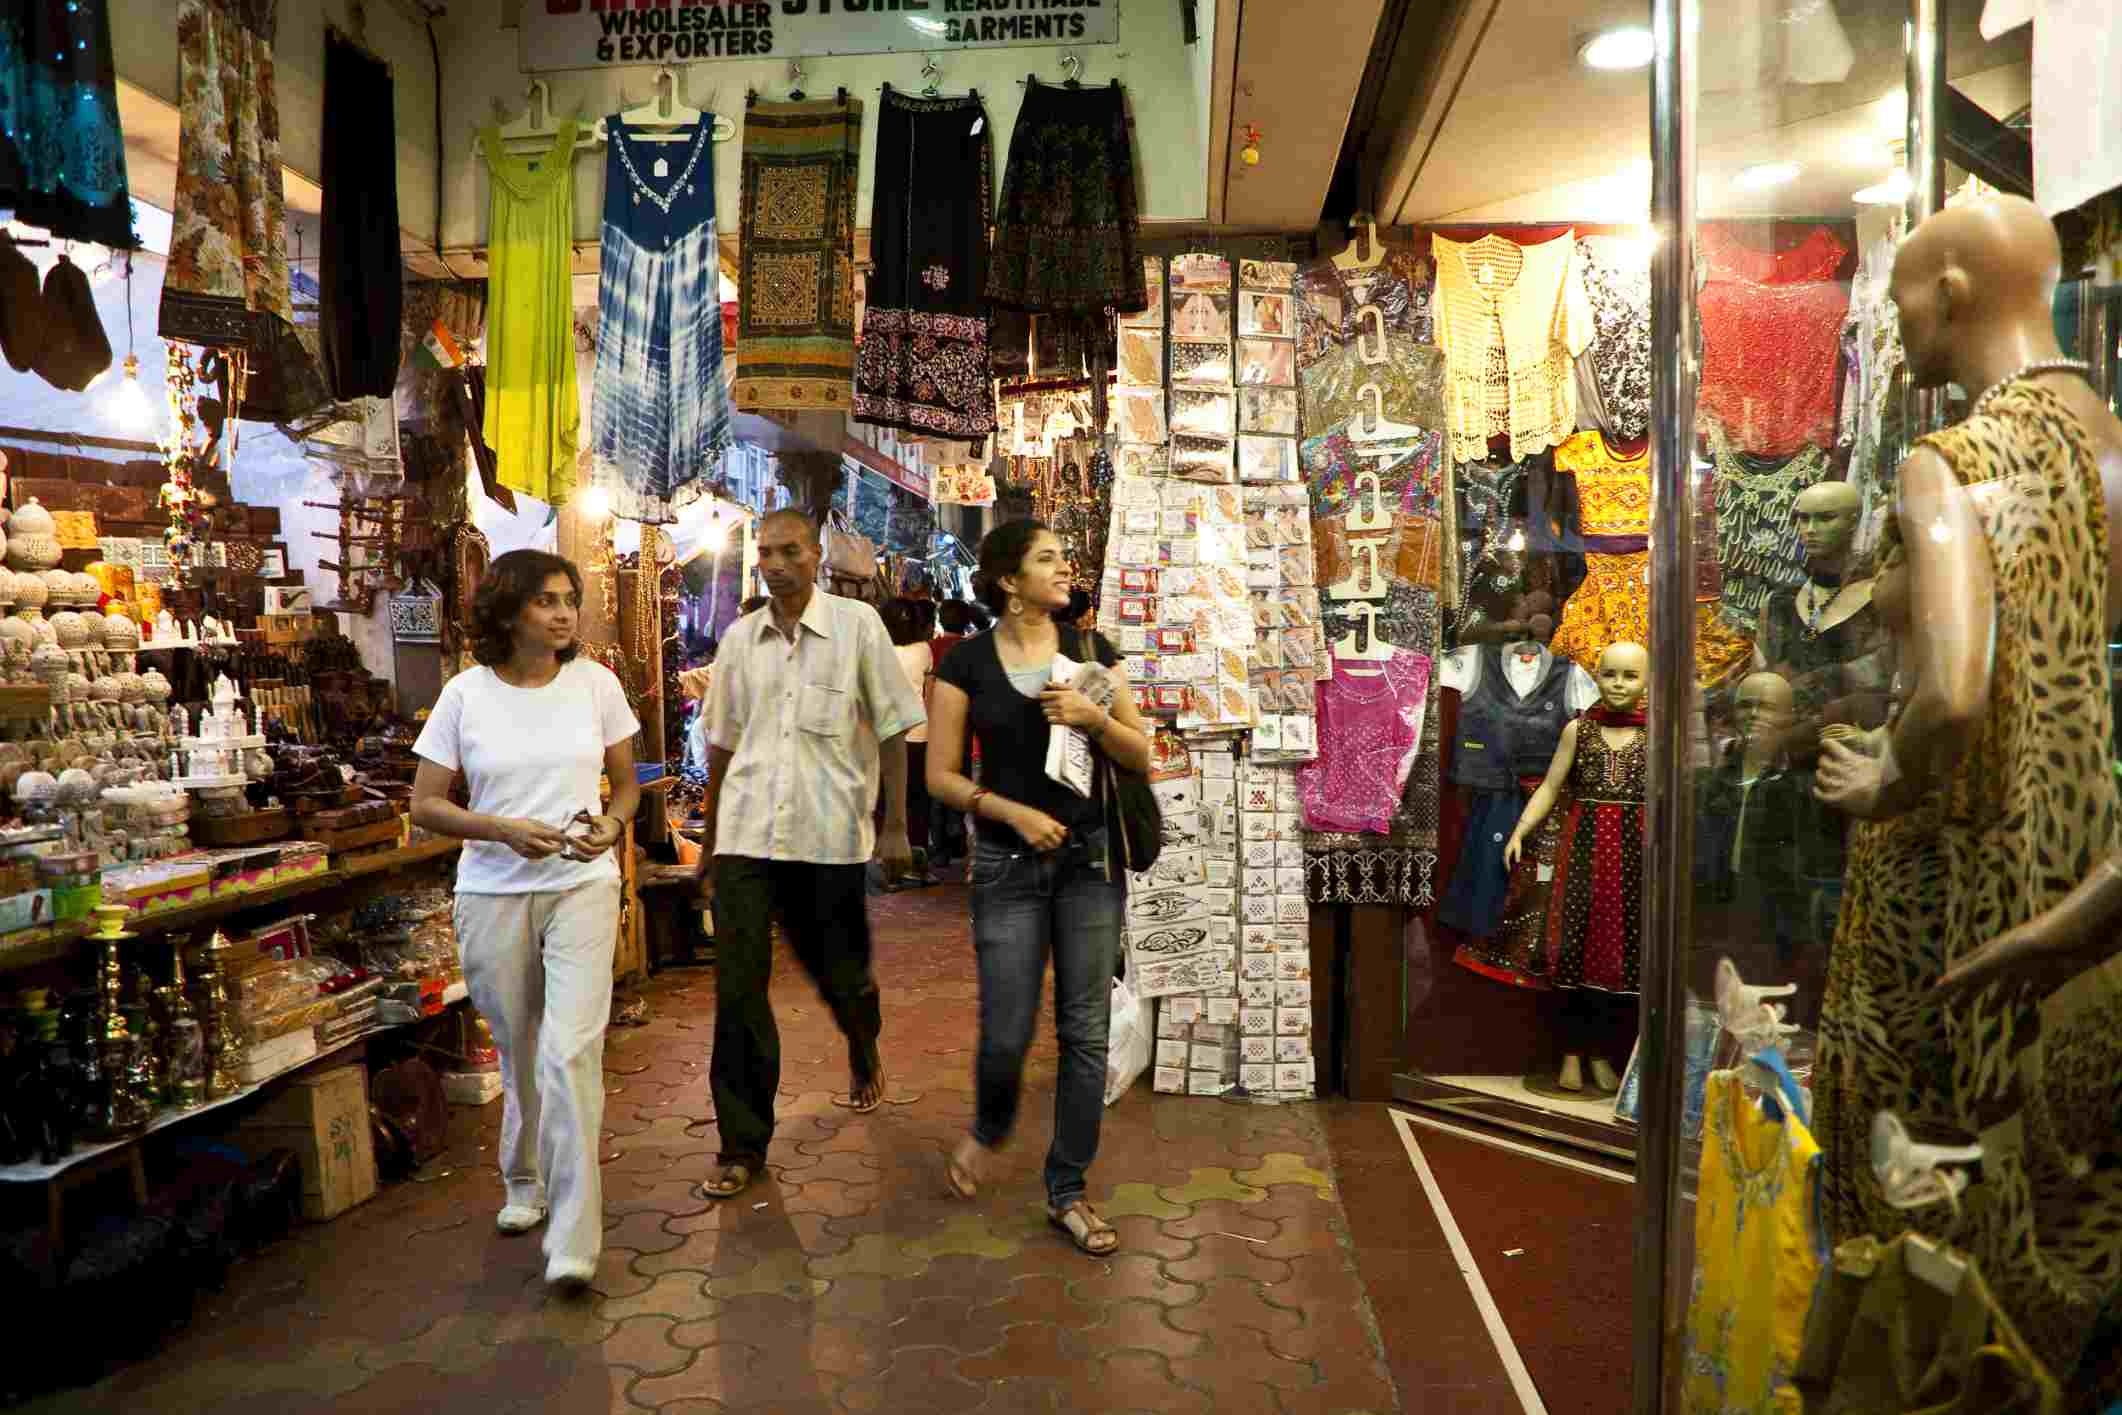 ea8bb405a6 14 Best Mumbai Markets for Shopping and Sightseeing